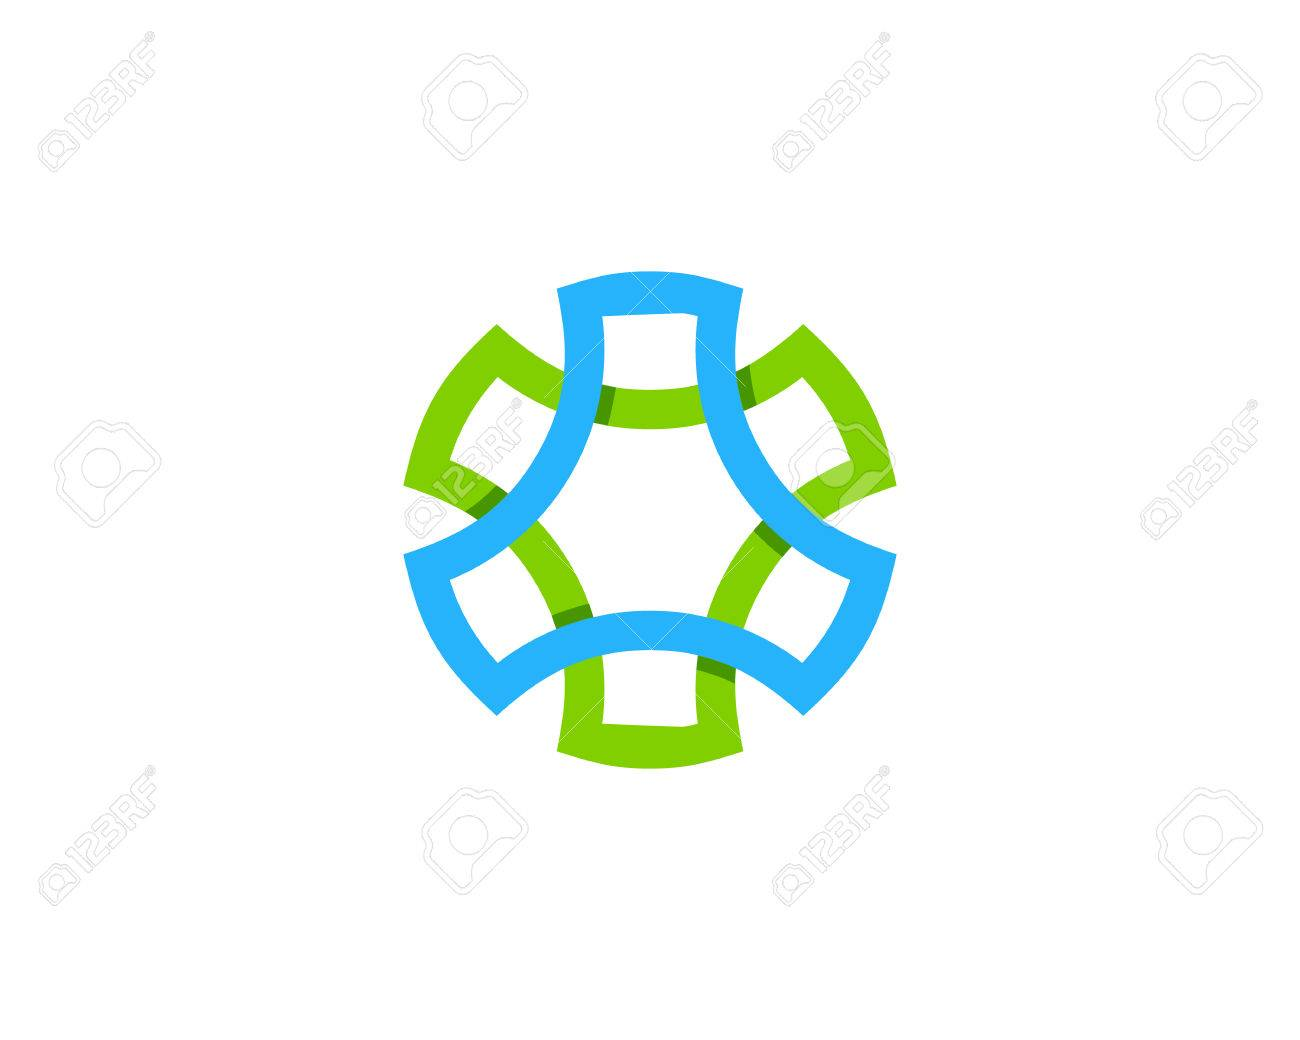 spin wheel logo design template royalty free cliparts vectors and